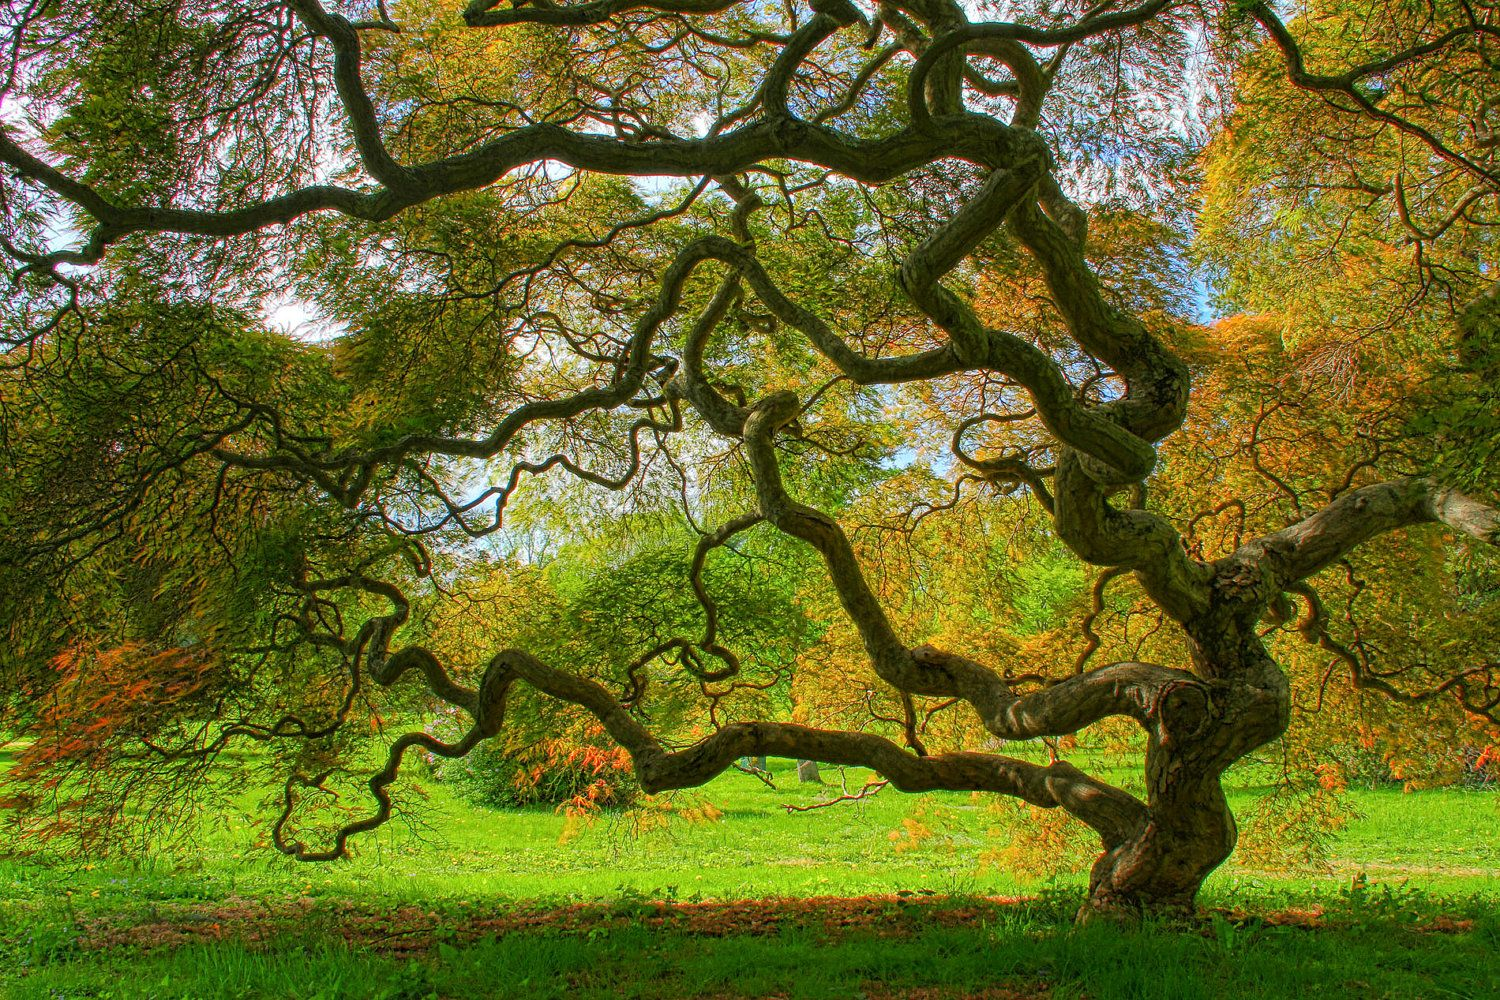 Japanese Maple Tree in Spring, Landscape Photograph, Green